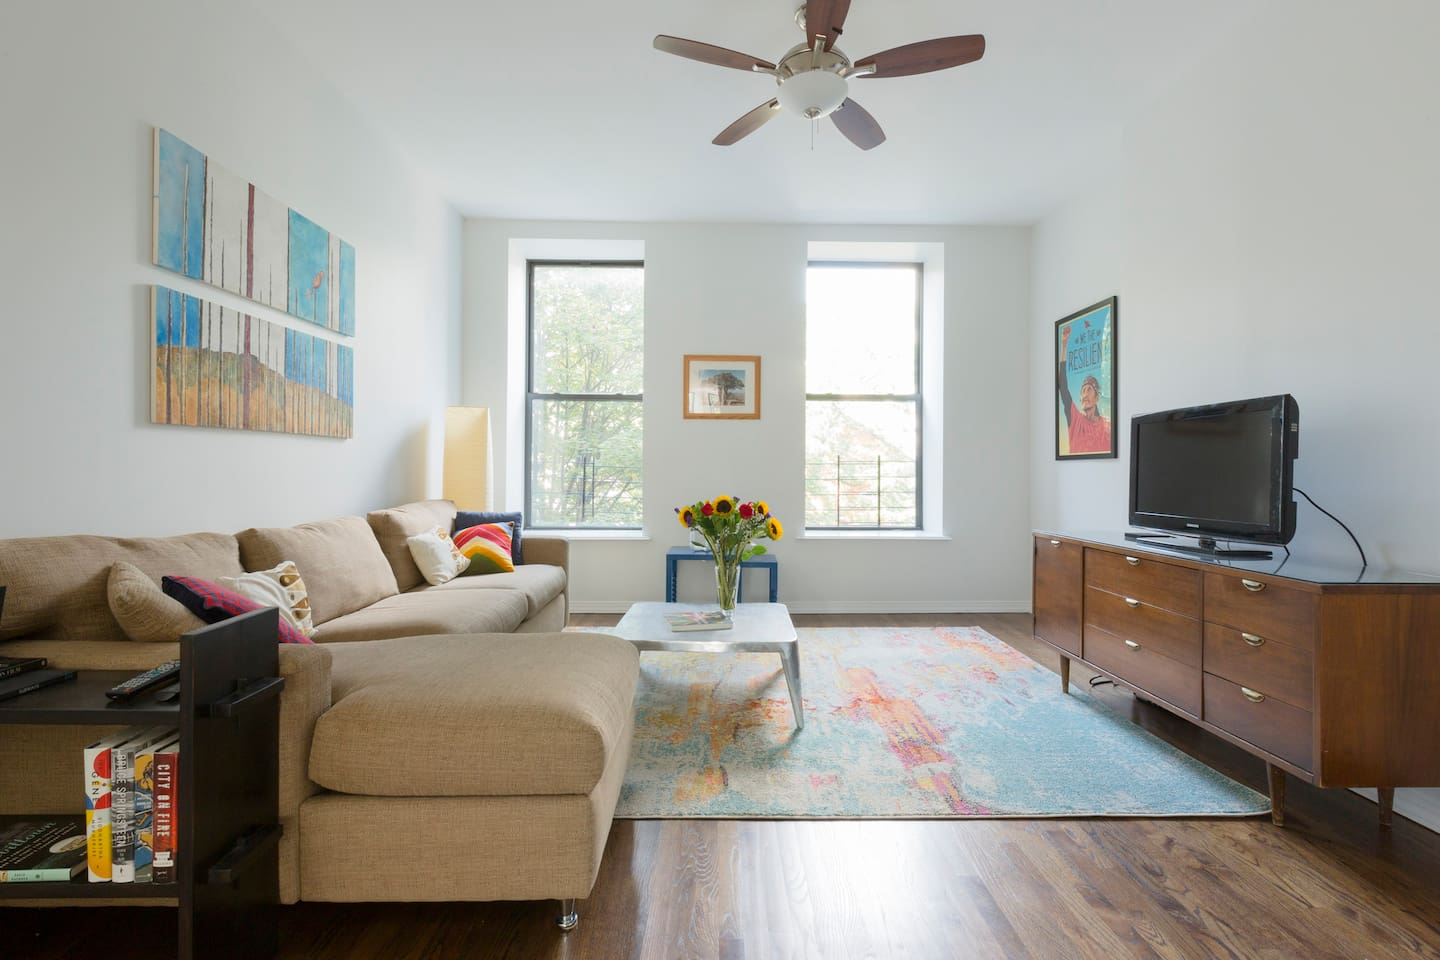 Apartment is the top two floors of a Harlem brownstone built c 1908 and renovated in 2007. The first level is a public space with dining, kitchen and living rooms.